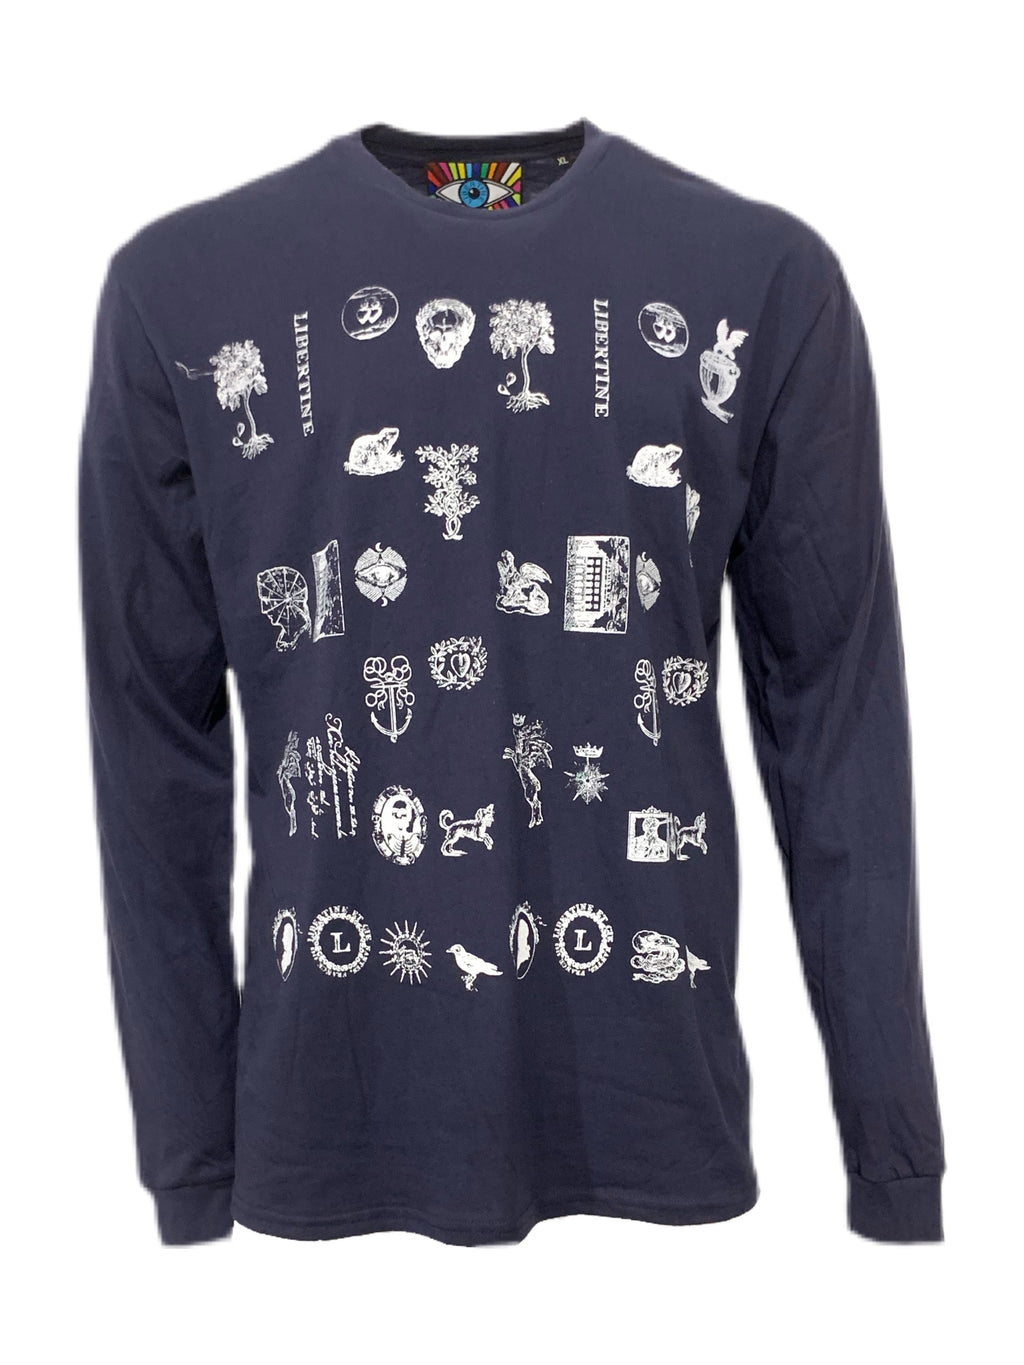 Libertine Stamps Long Sleeve Navy T-Shirt - Spring 2021 - Libertine